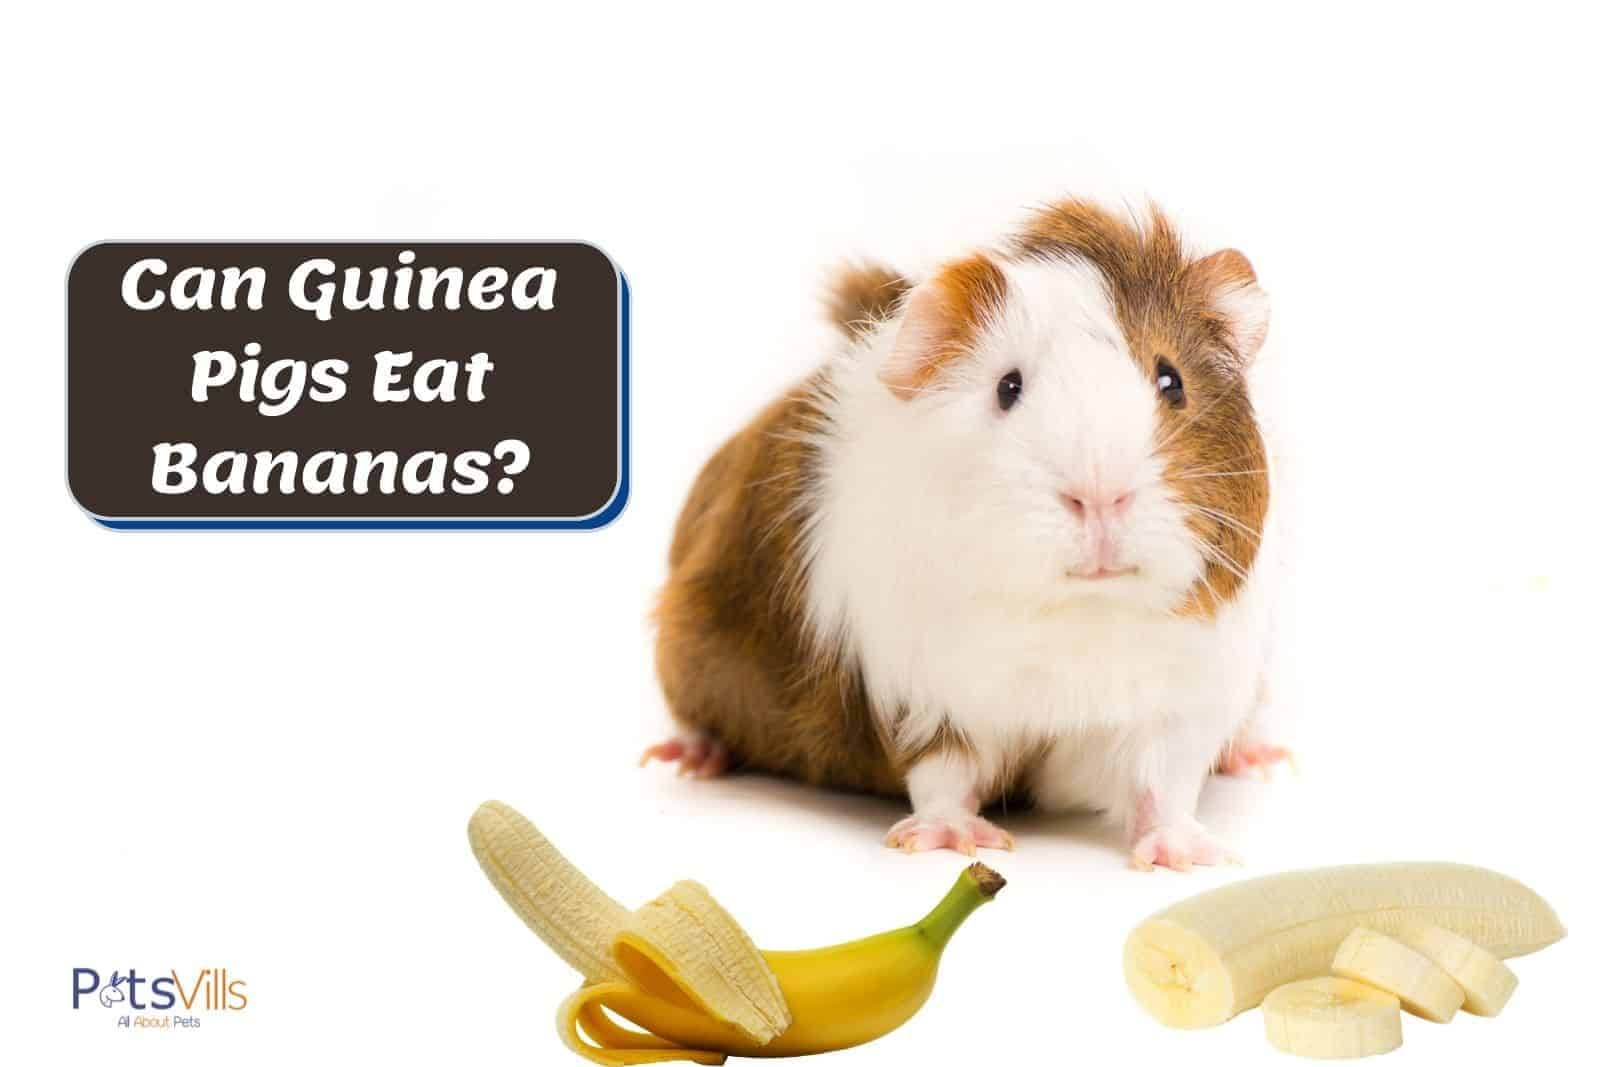 A brown and white guinea pig staring at the peeled bananas. Can guinea pigs eat bananas?